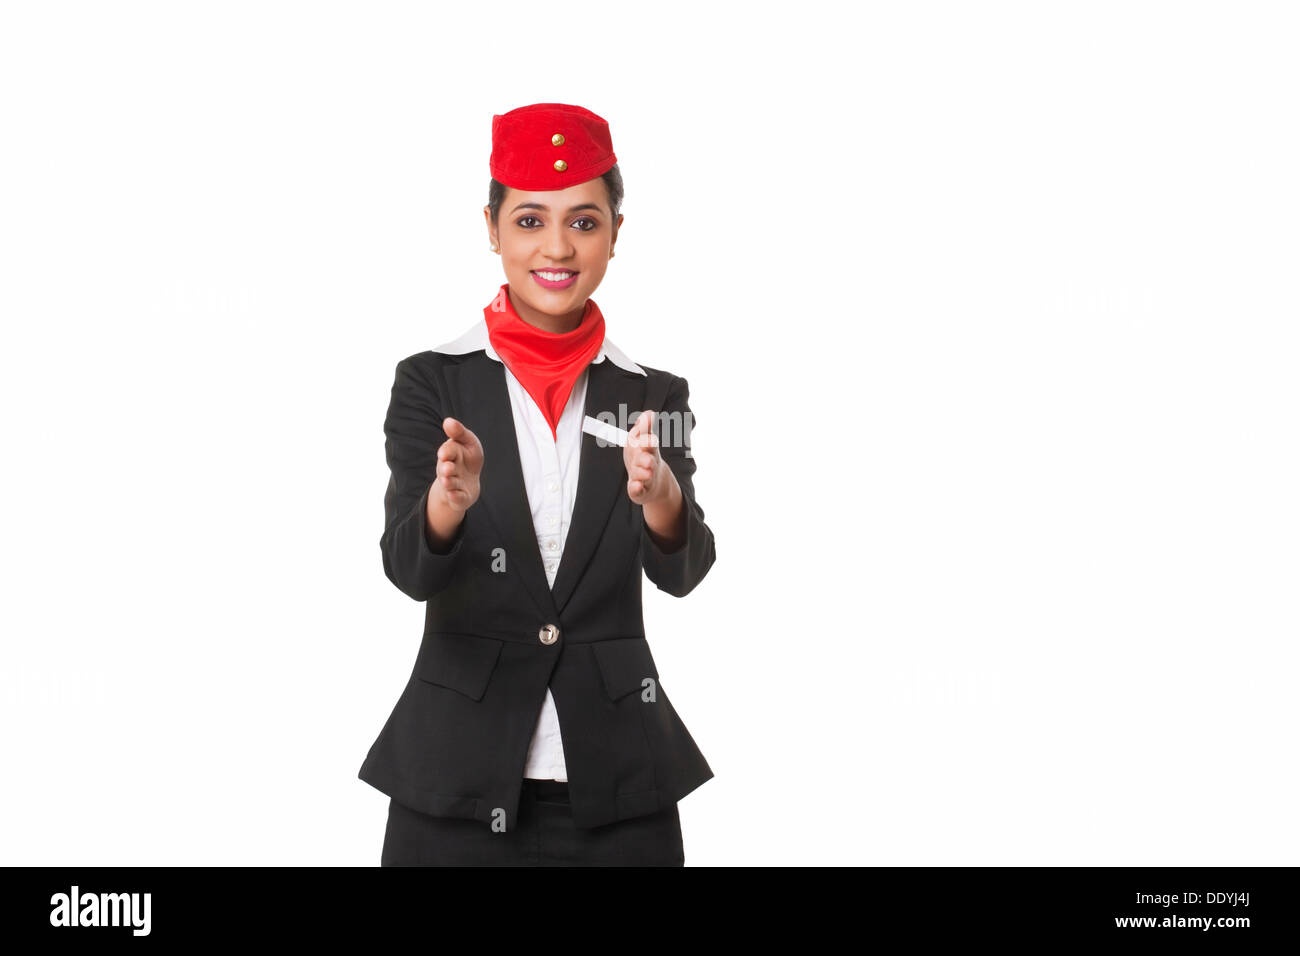 Flight attendant gesturing towards exits over white background - Stock Image